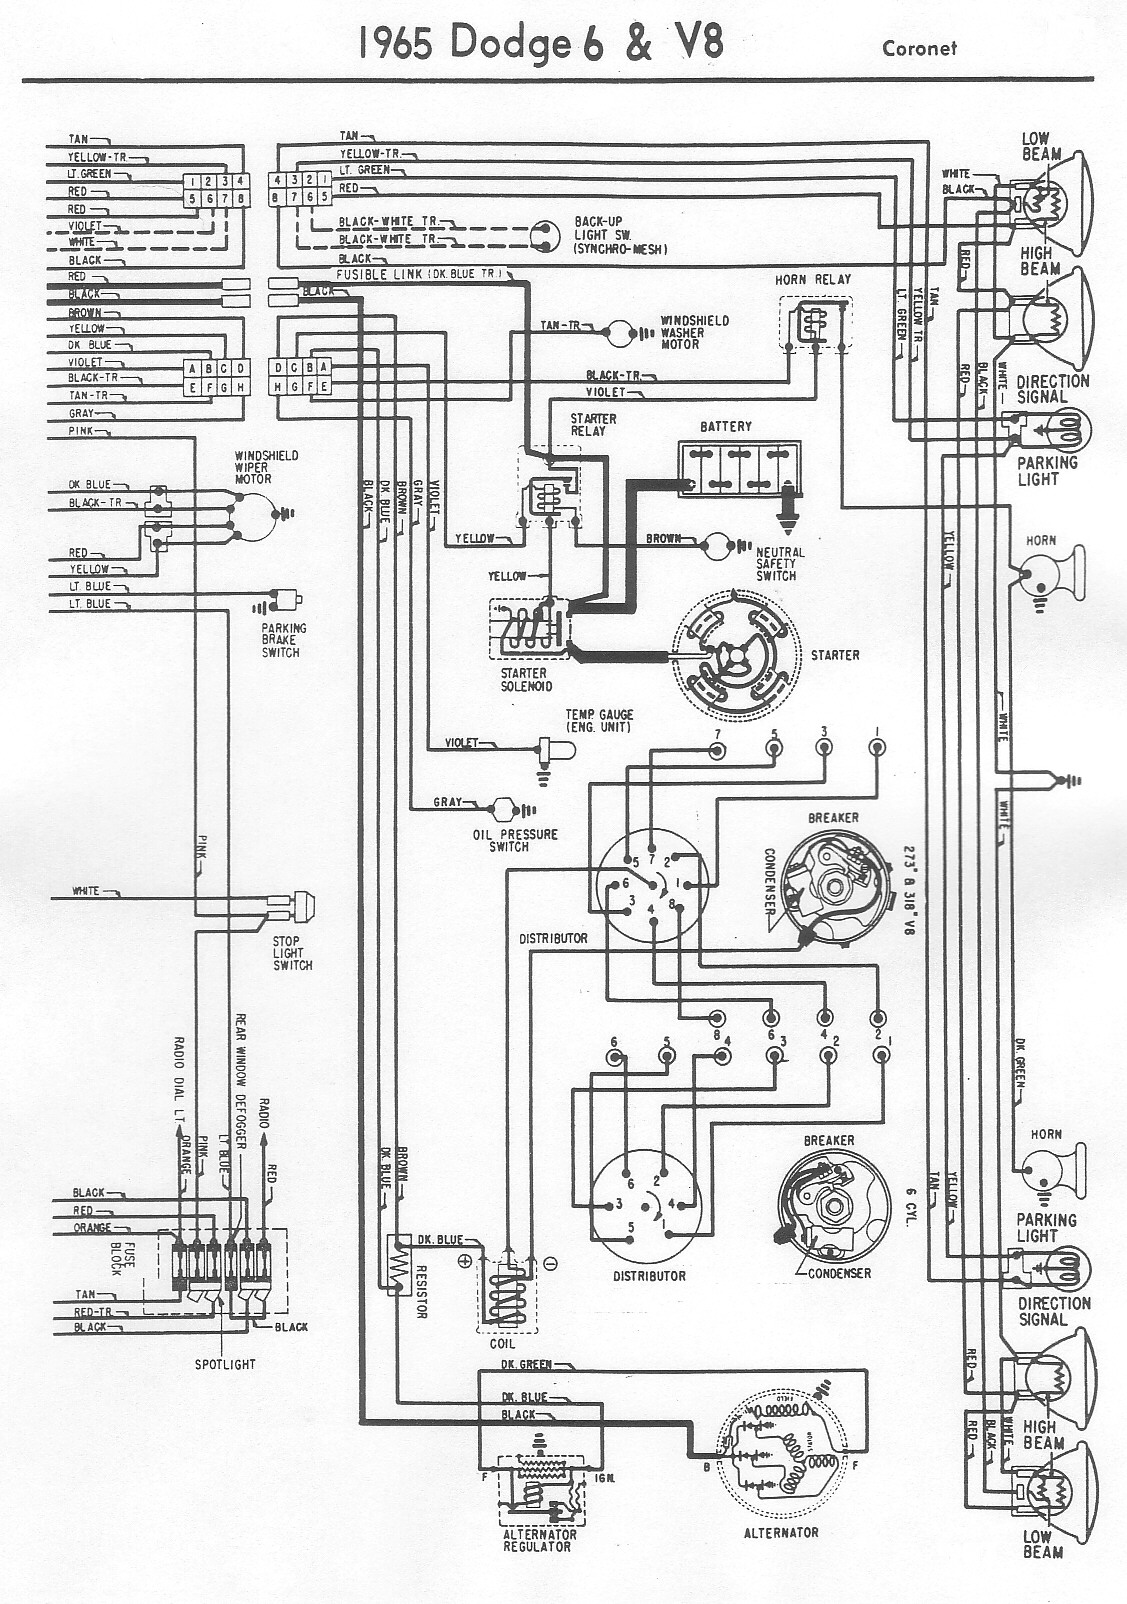 1965 wiring diagram vintage dodge coronet2 bzerob com technical articles library wiring section Trailer Wiring Harness Chrysler at eliteediting.co